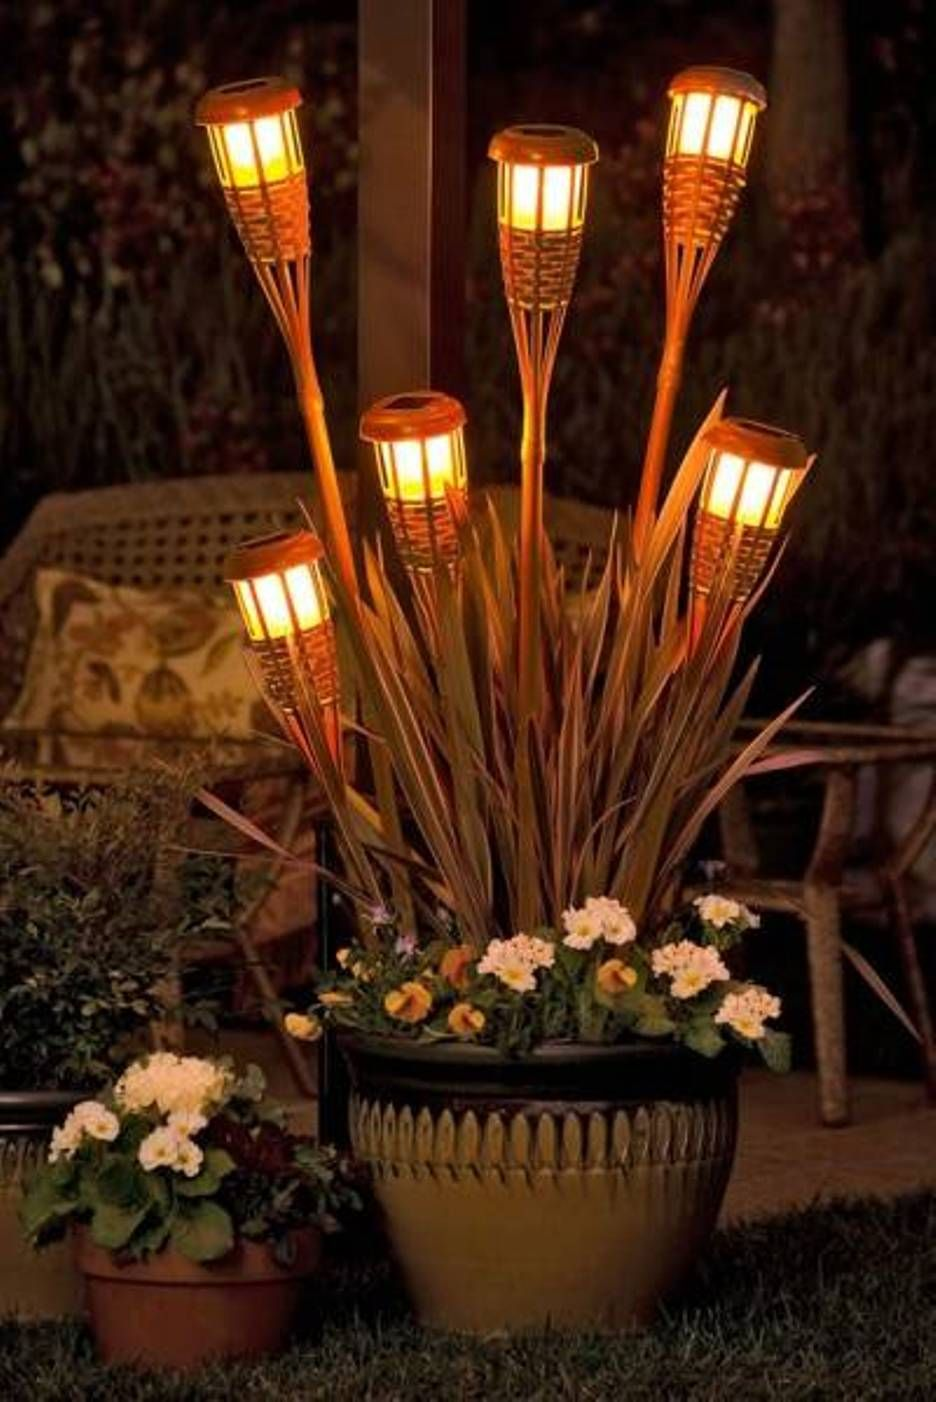 outdoor patio lighting ideas pictures. outdoor party lighting ideas exterior small decking home swimming patio pictures 4